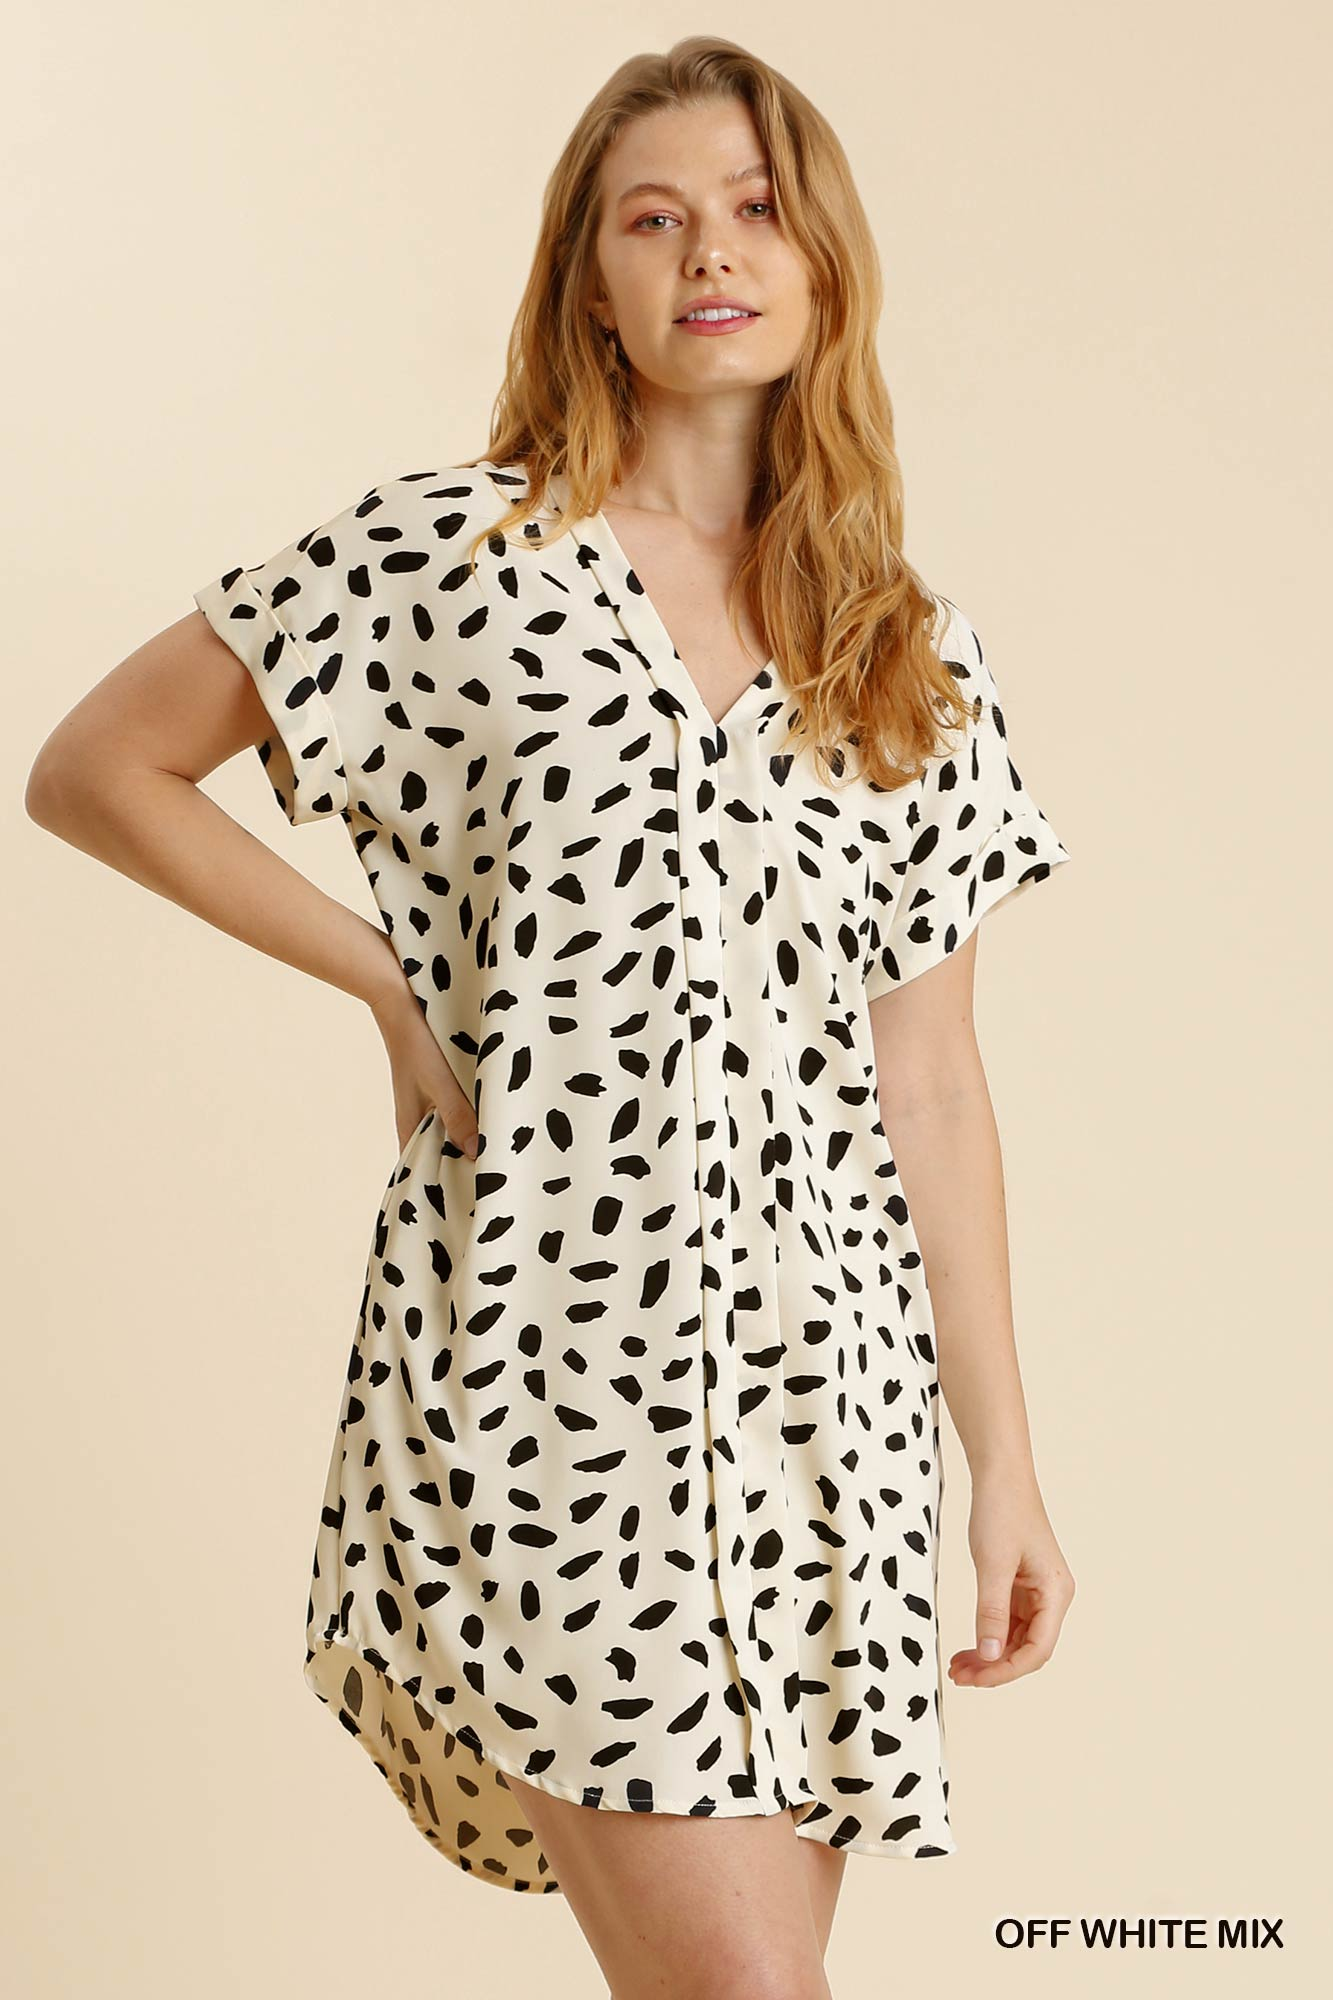 V Neck Dalmatian Print Dress with Folded Lapel Details and Pockets